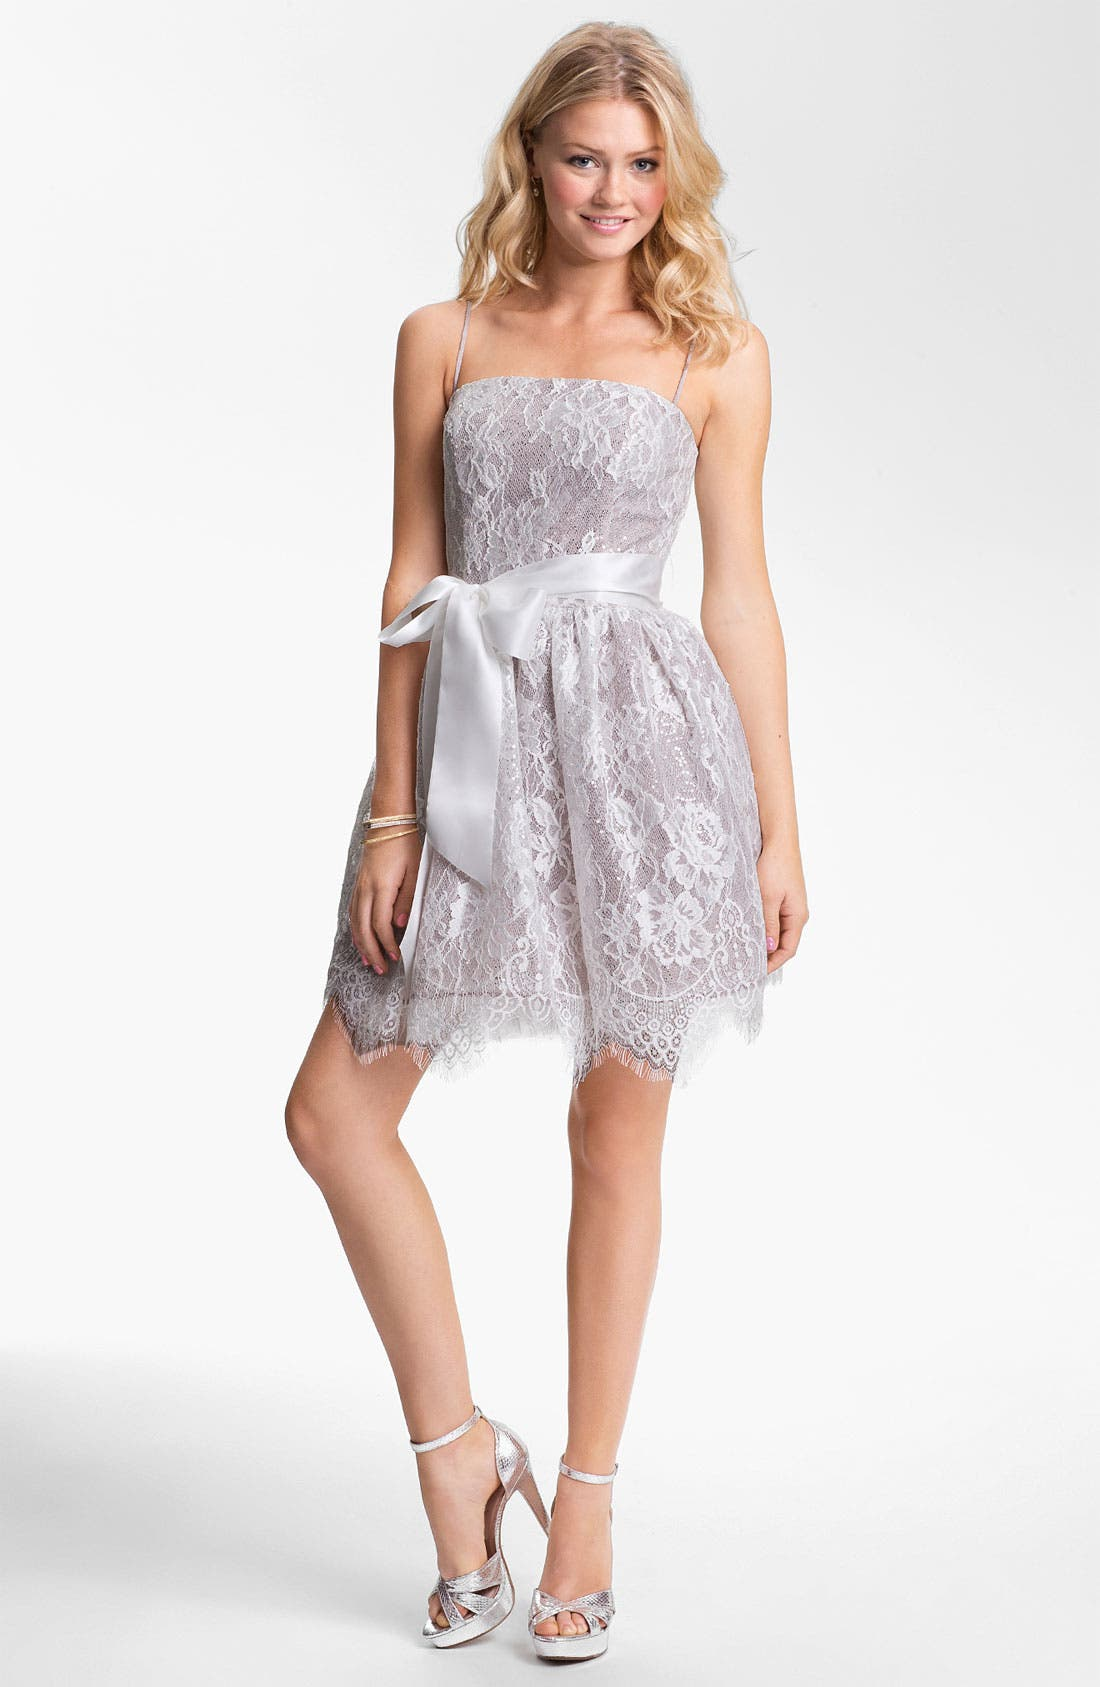 Main Image - Jessica McClintock Sequin Lace Fit & Flare Dress